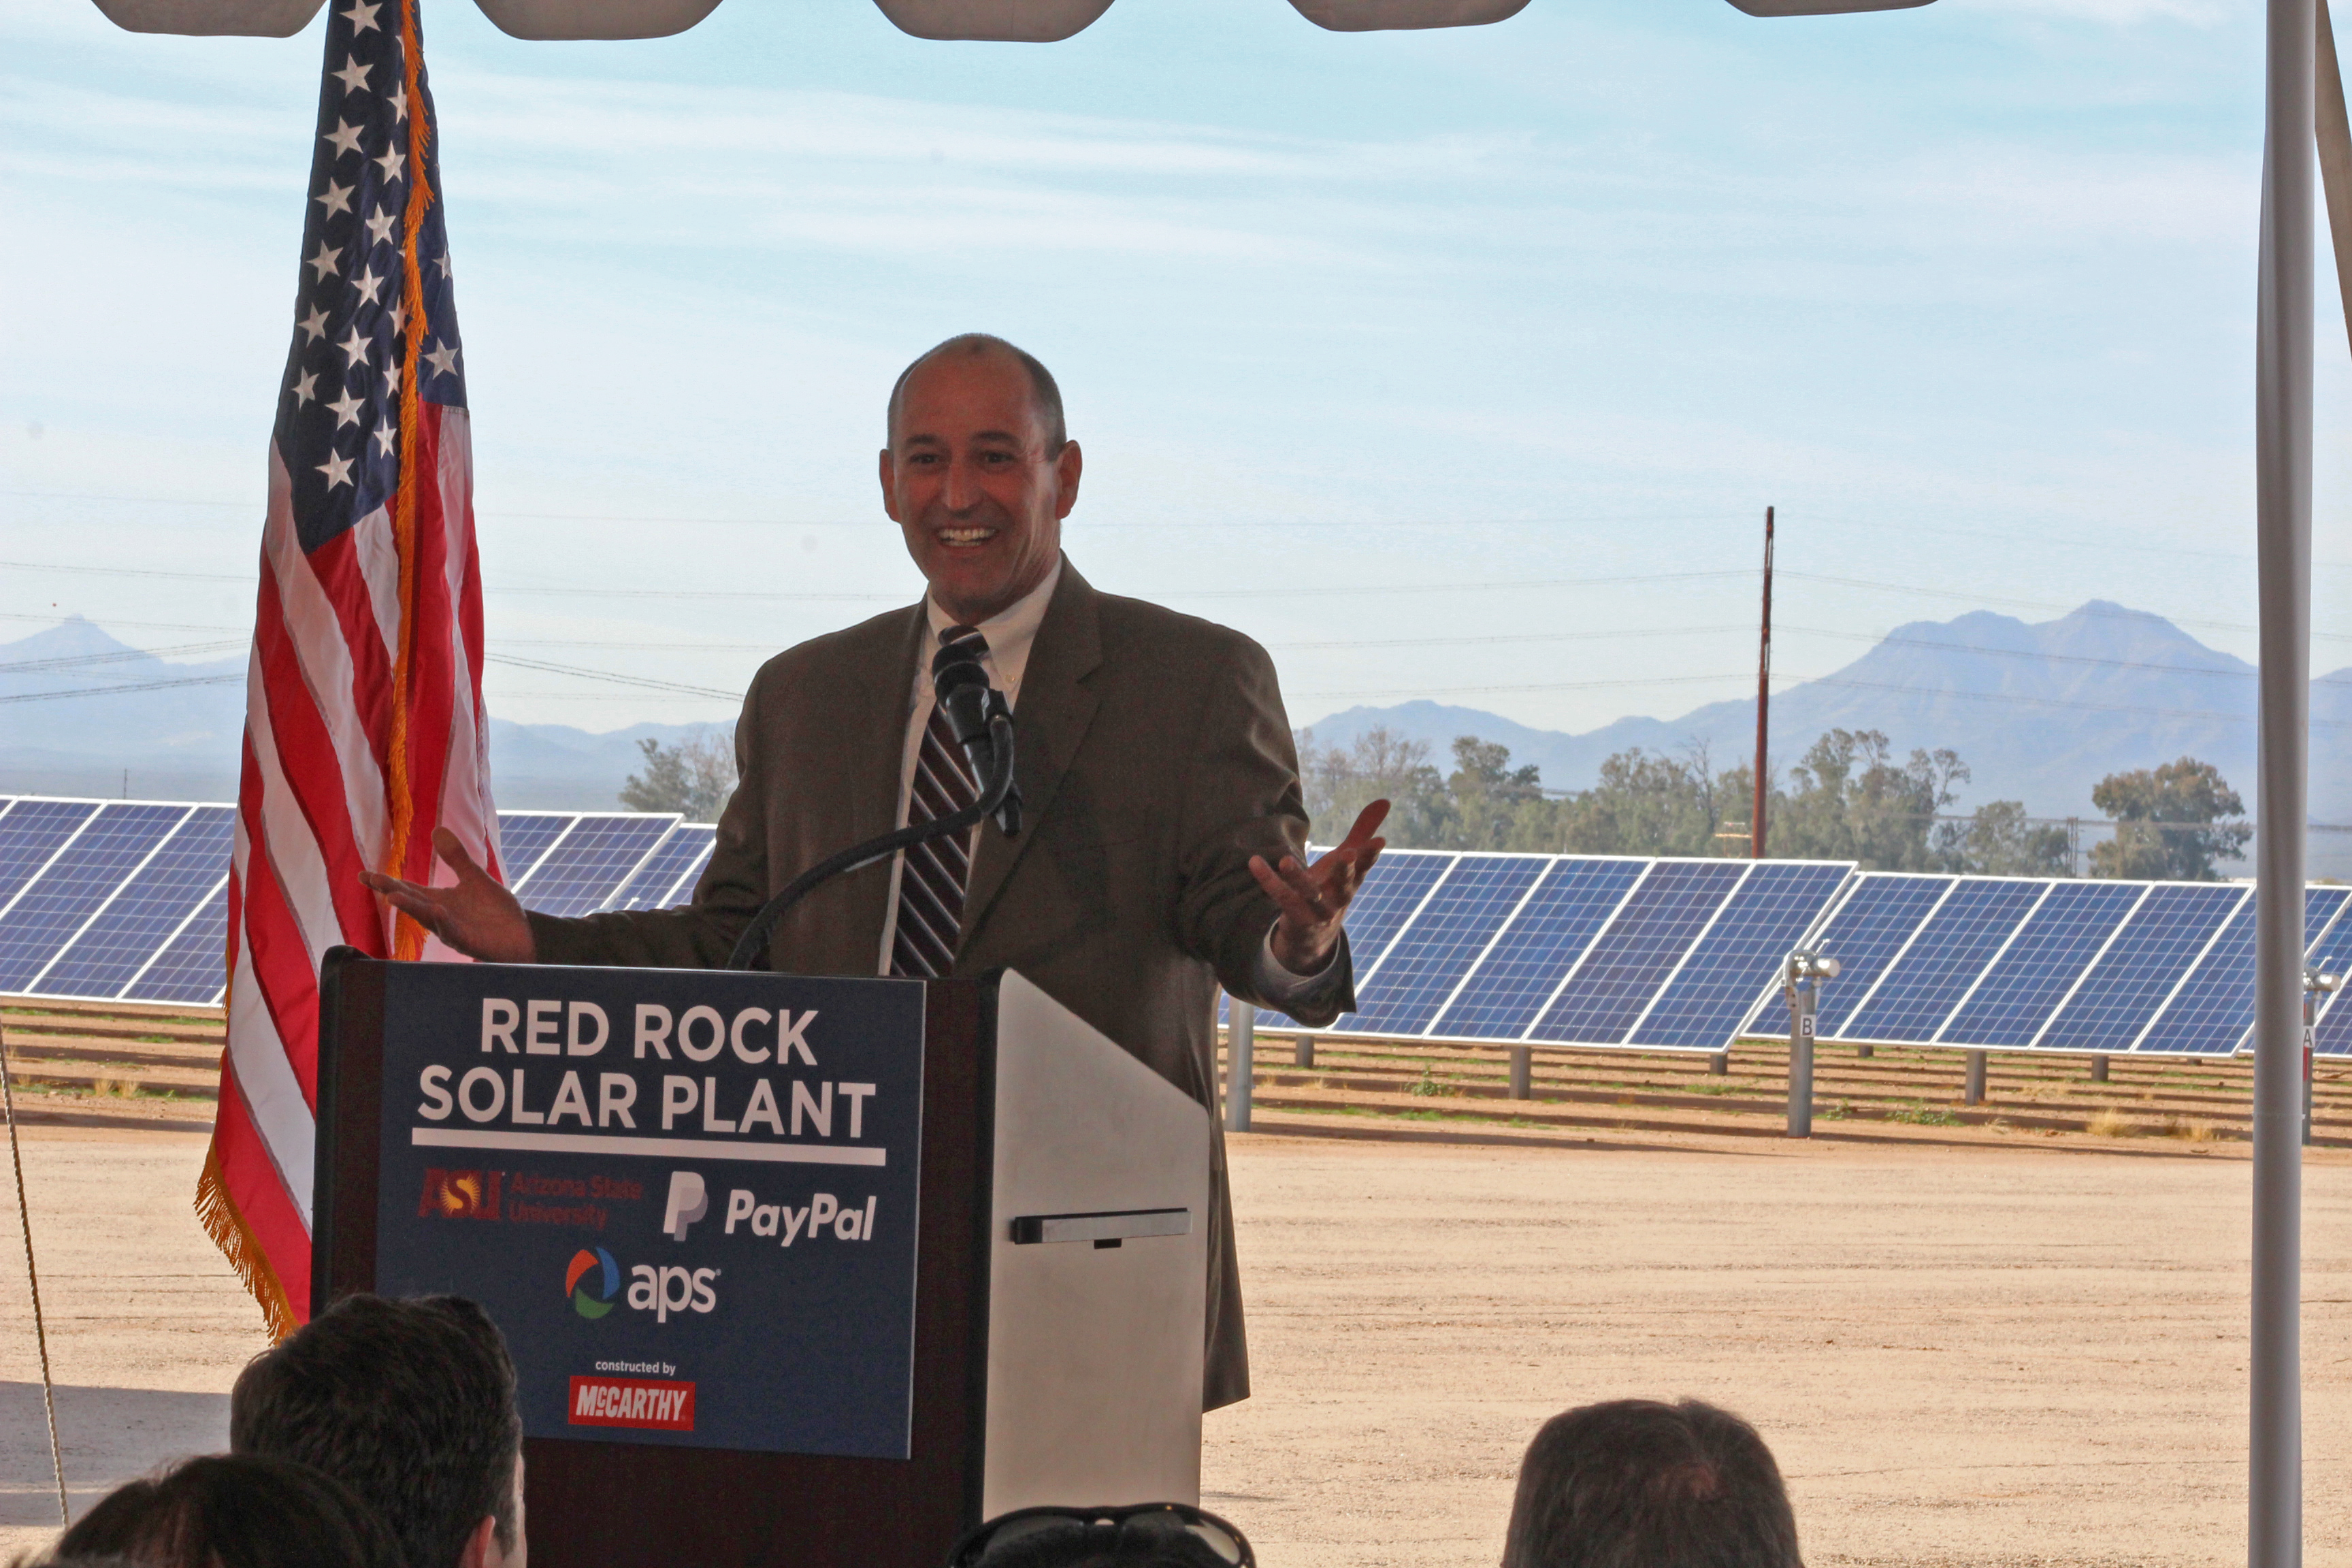 """Daniel Froetscher, APS Senior Vice President of Transmission, Distribution and Customers, helped unveil the Red Rock Solar Plant to the public today. APS developed and will own and operate the 40-megawatt photovoltaic plant, located 30 miles south of Casa Grande in Red Rock, Ariz. Arizona State University (ASU) and PayPal will purchase renewable energy from APS that is equivalent to the amount Red Rock is projected to generate. """"Arizona is one of the most solar-friendly states in the nation, and APS remains at the forefront among solar-friendly companies,"""" Froetscher said. """"In fact, last year, we reached one gigawatt of solar on our system, becoming the only utility outside California to achieve this milestone."""" Red Rock is APS's largest grid-scale solar power plant, surpassing the 35-megawatt Foothills Solar Plant located near Yuma, Ariz. (Photo: Business Wire)"""